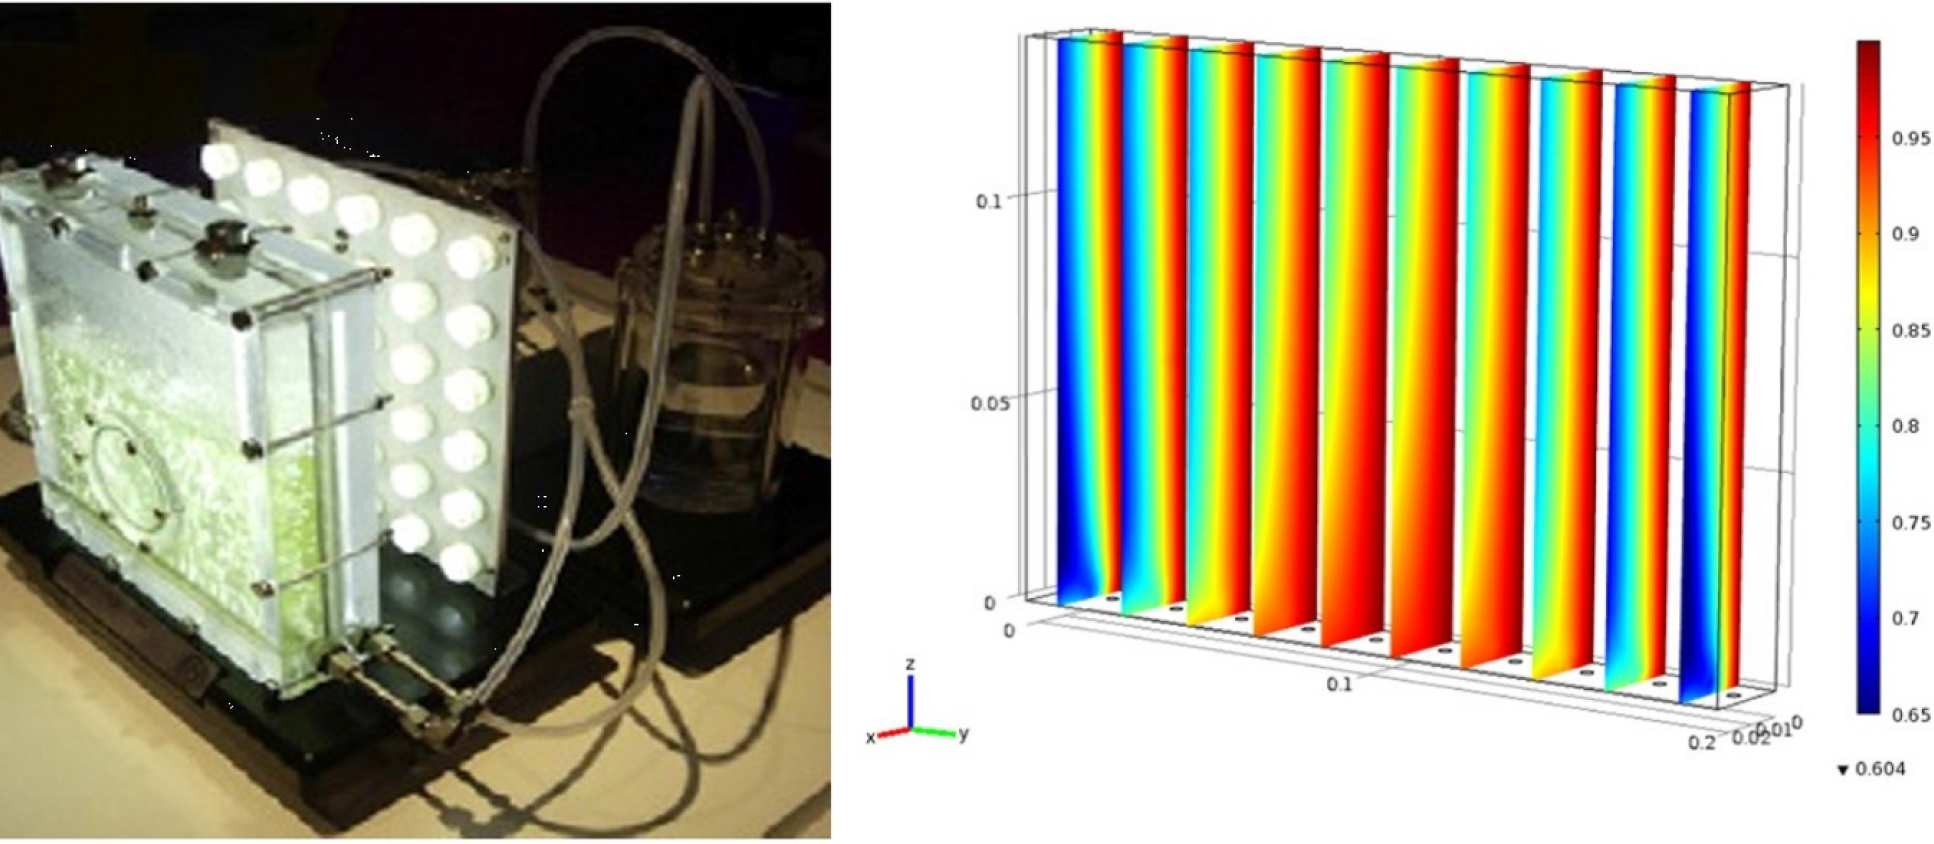 Flat plate photo-bioreactor; normalised local light intensity in the PBR obtained from CFD simulations (Zhang et al., Algal Research, 8, 99-107 (2015)).